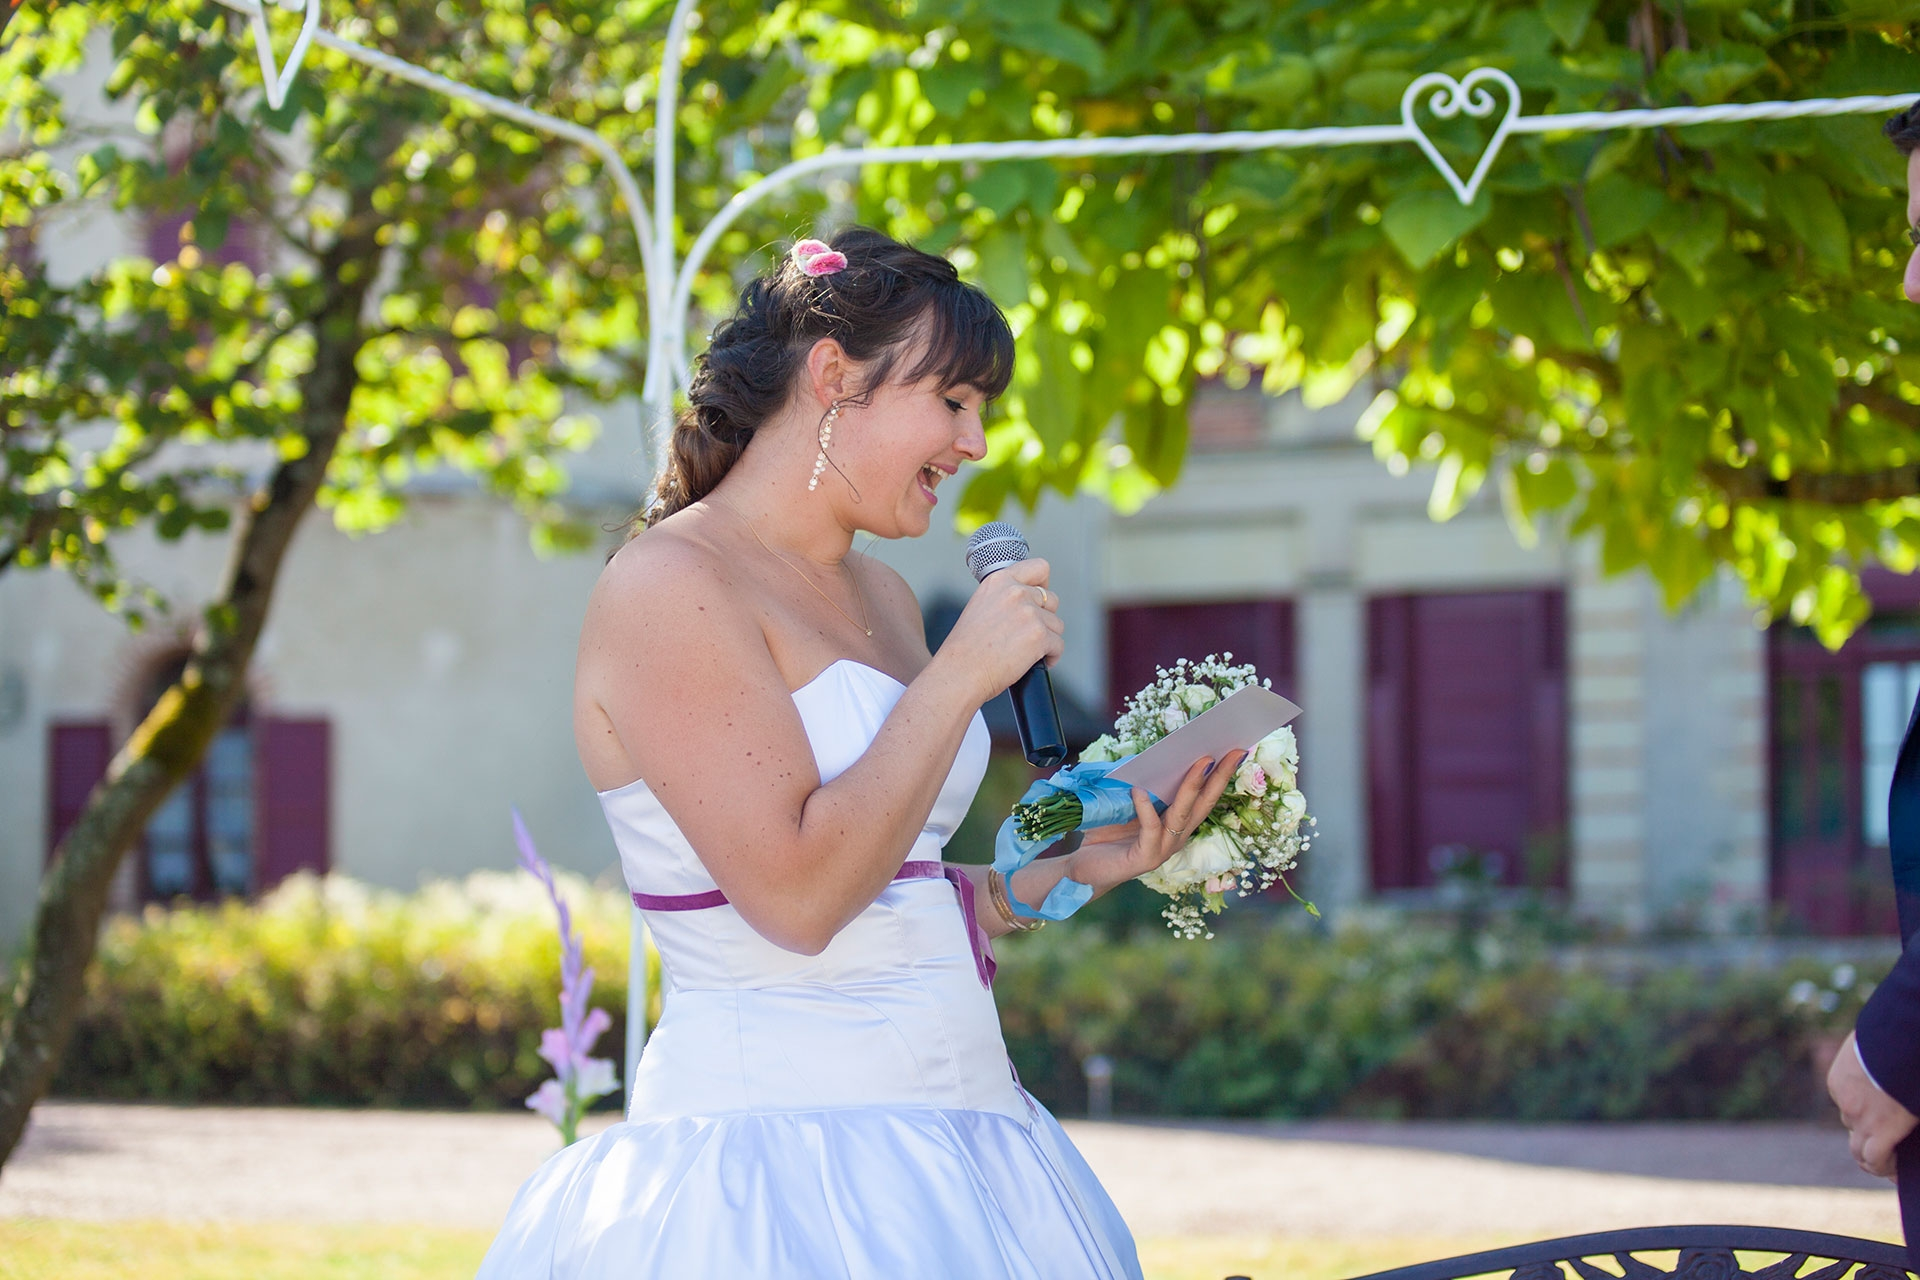 particuliers-evenements-mariages-oui-france&philippe-50